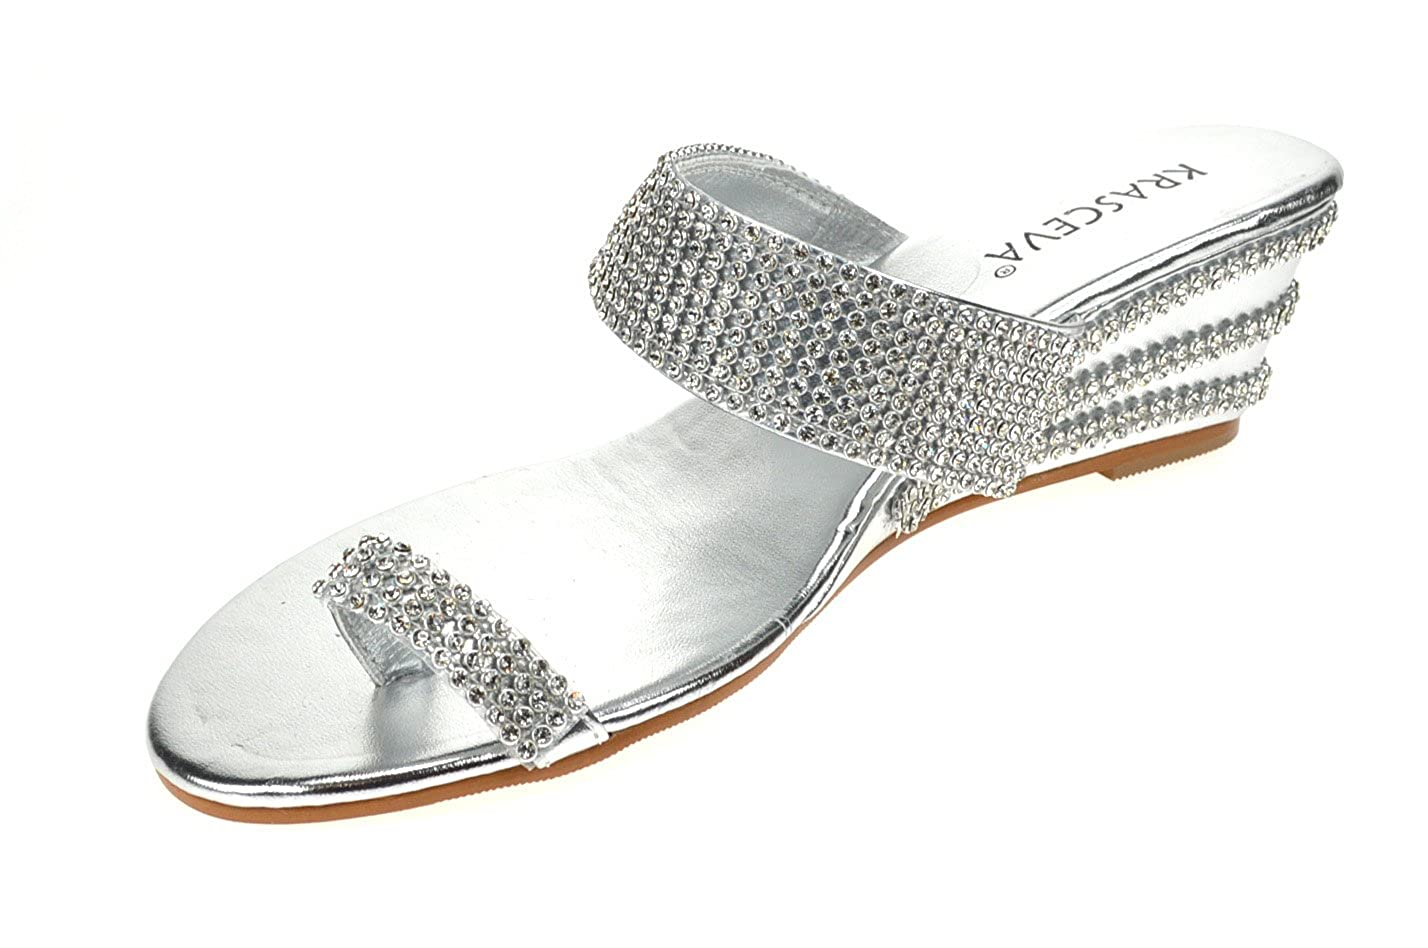 95f0dd44f30f0b Chic Feet Ladies Womens Silver Diamante Low Wedge Heel Dressy Holiday Party  Evening Shoes Sandals - UK Size 4  Amazon.co.uk  Shoes   Bags